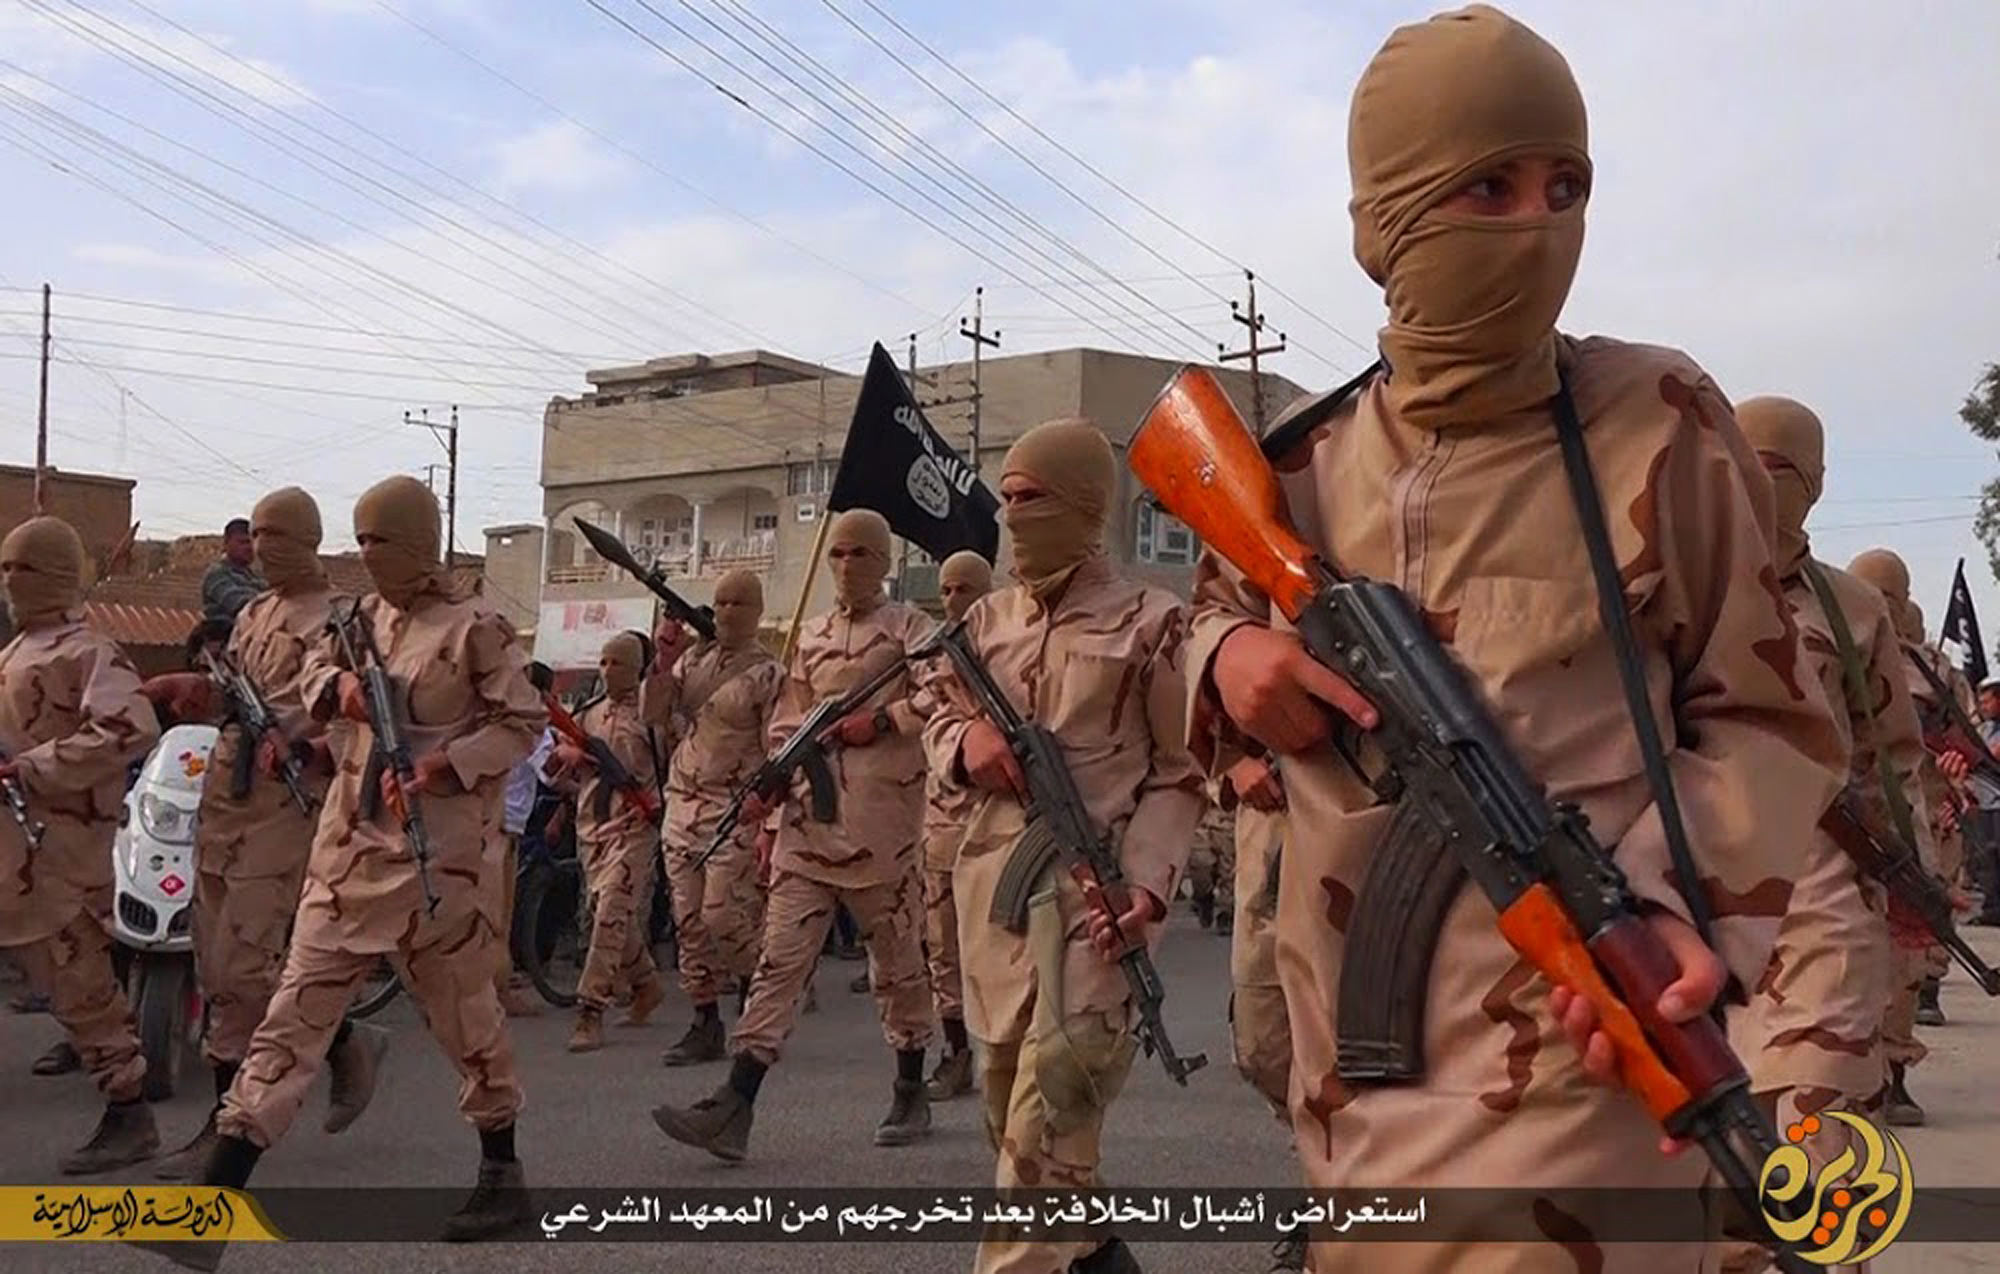 Steeped in Martyrdom, Cubs of the Caliphate Groomed as